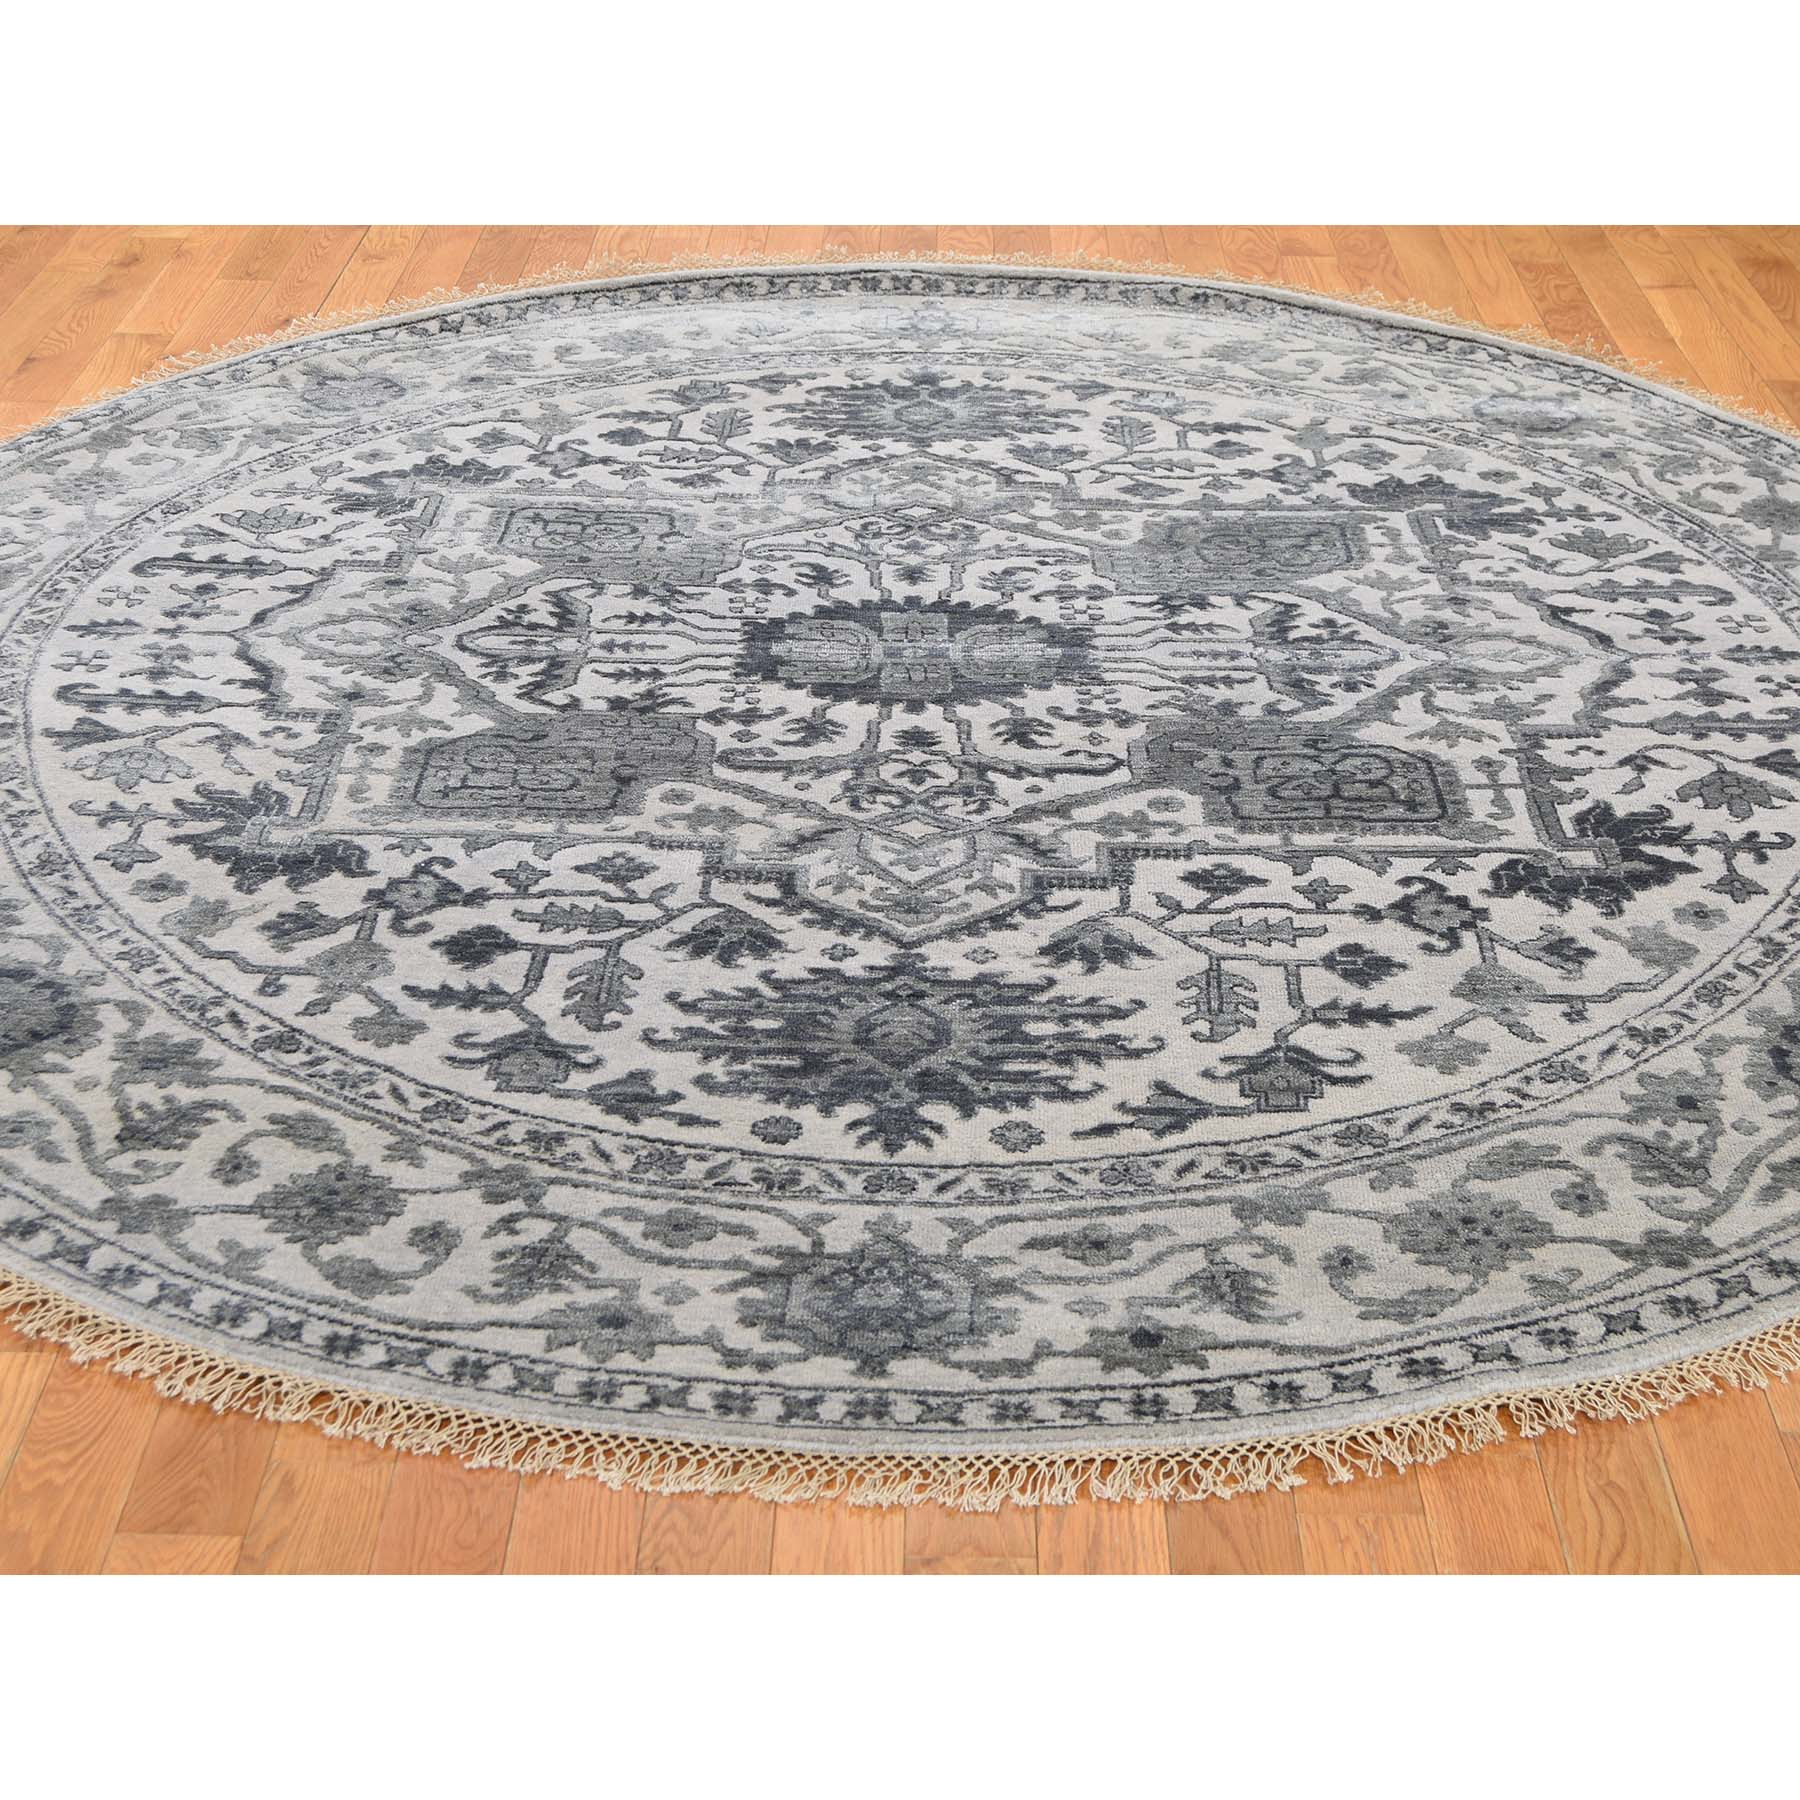 8-1 x8-1  Silver Heriz Design Wool And Silk Hi-lo Pile Hand-Knotted Round Oriental Rug